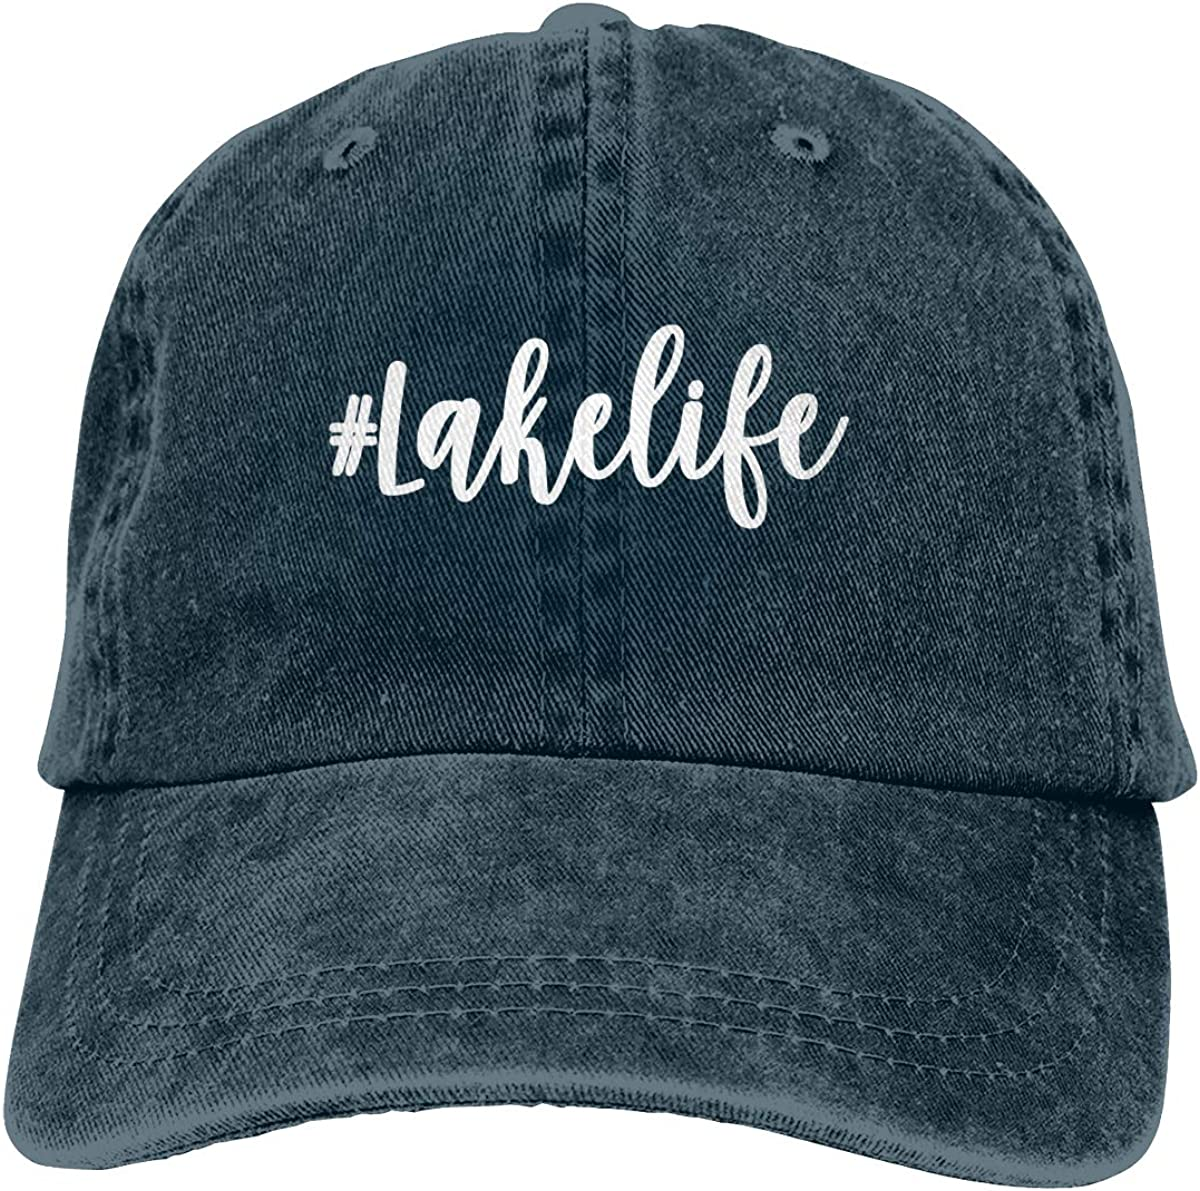 Free shipping anywhere in the nation OASCUVER Printed Lake Life Hat Cotton Adjustable Beac Jacksonville Mall Distressed